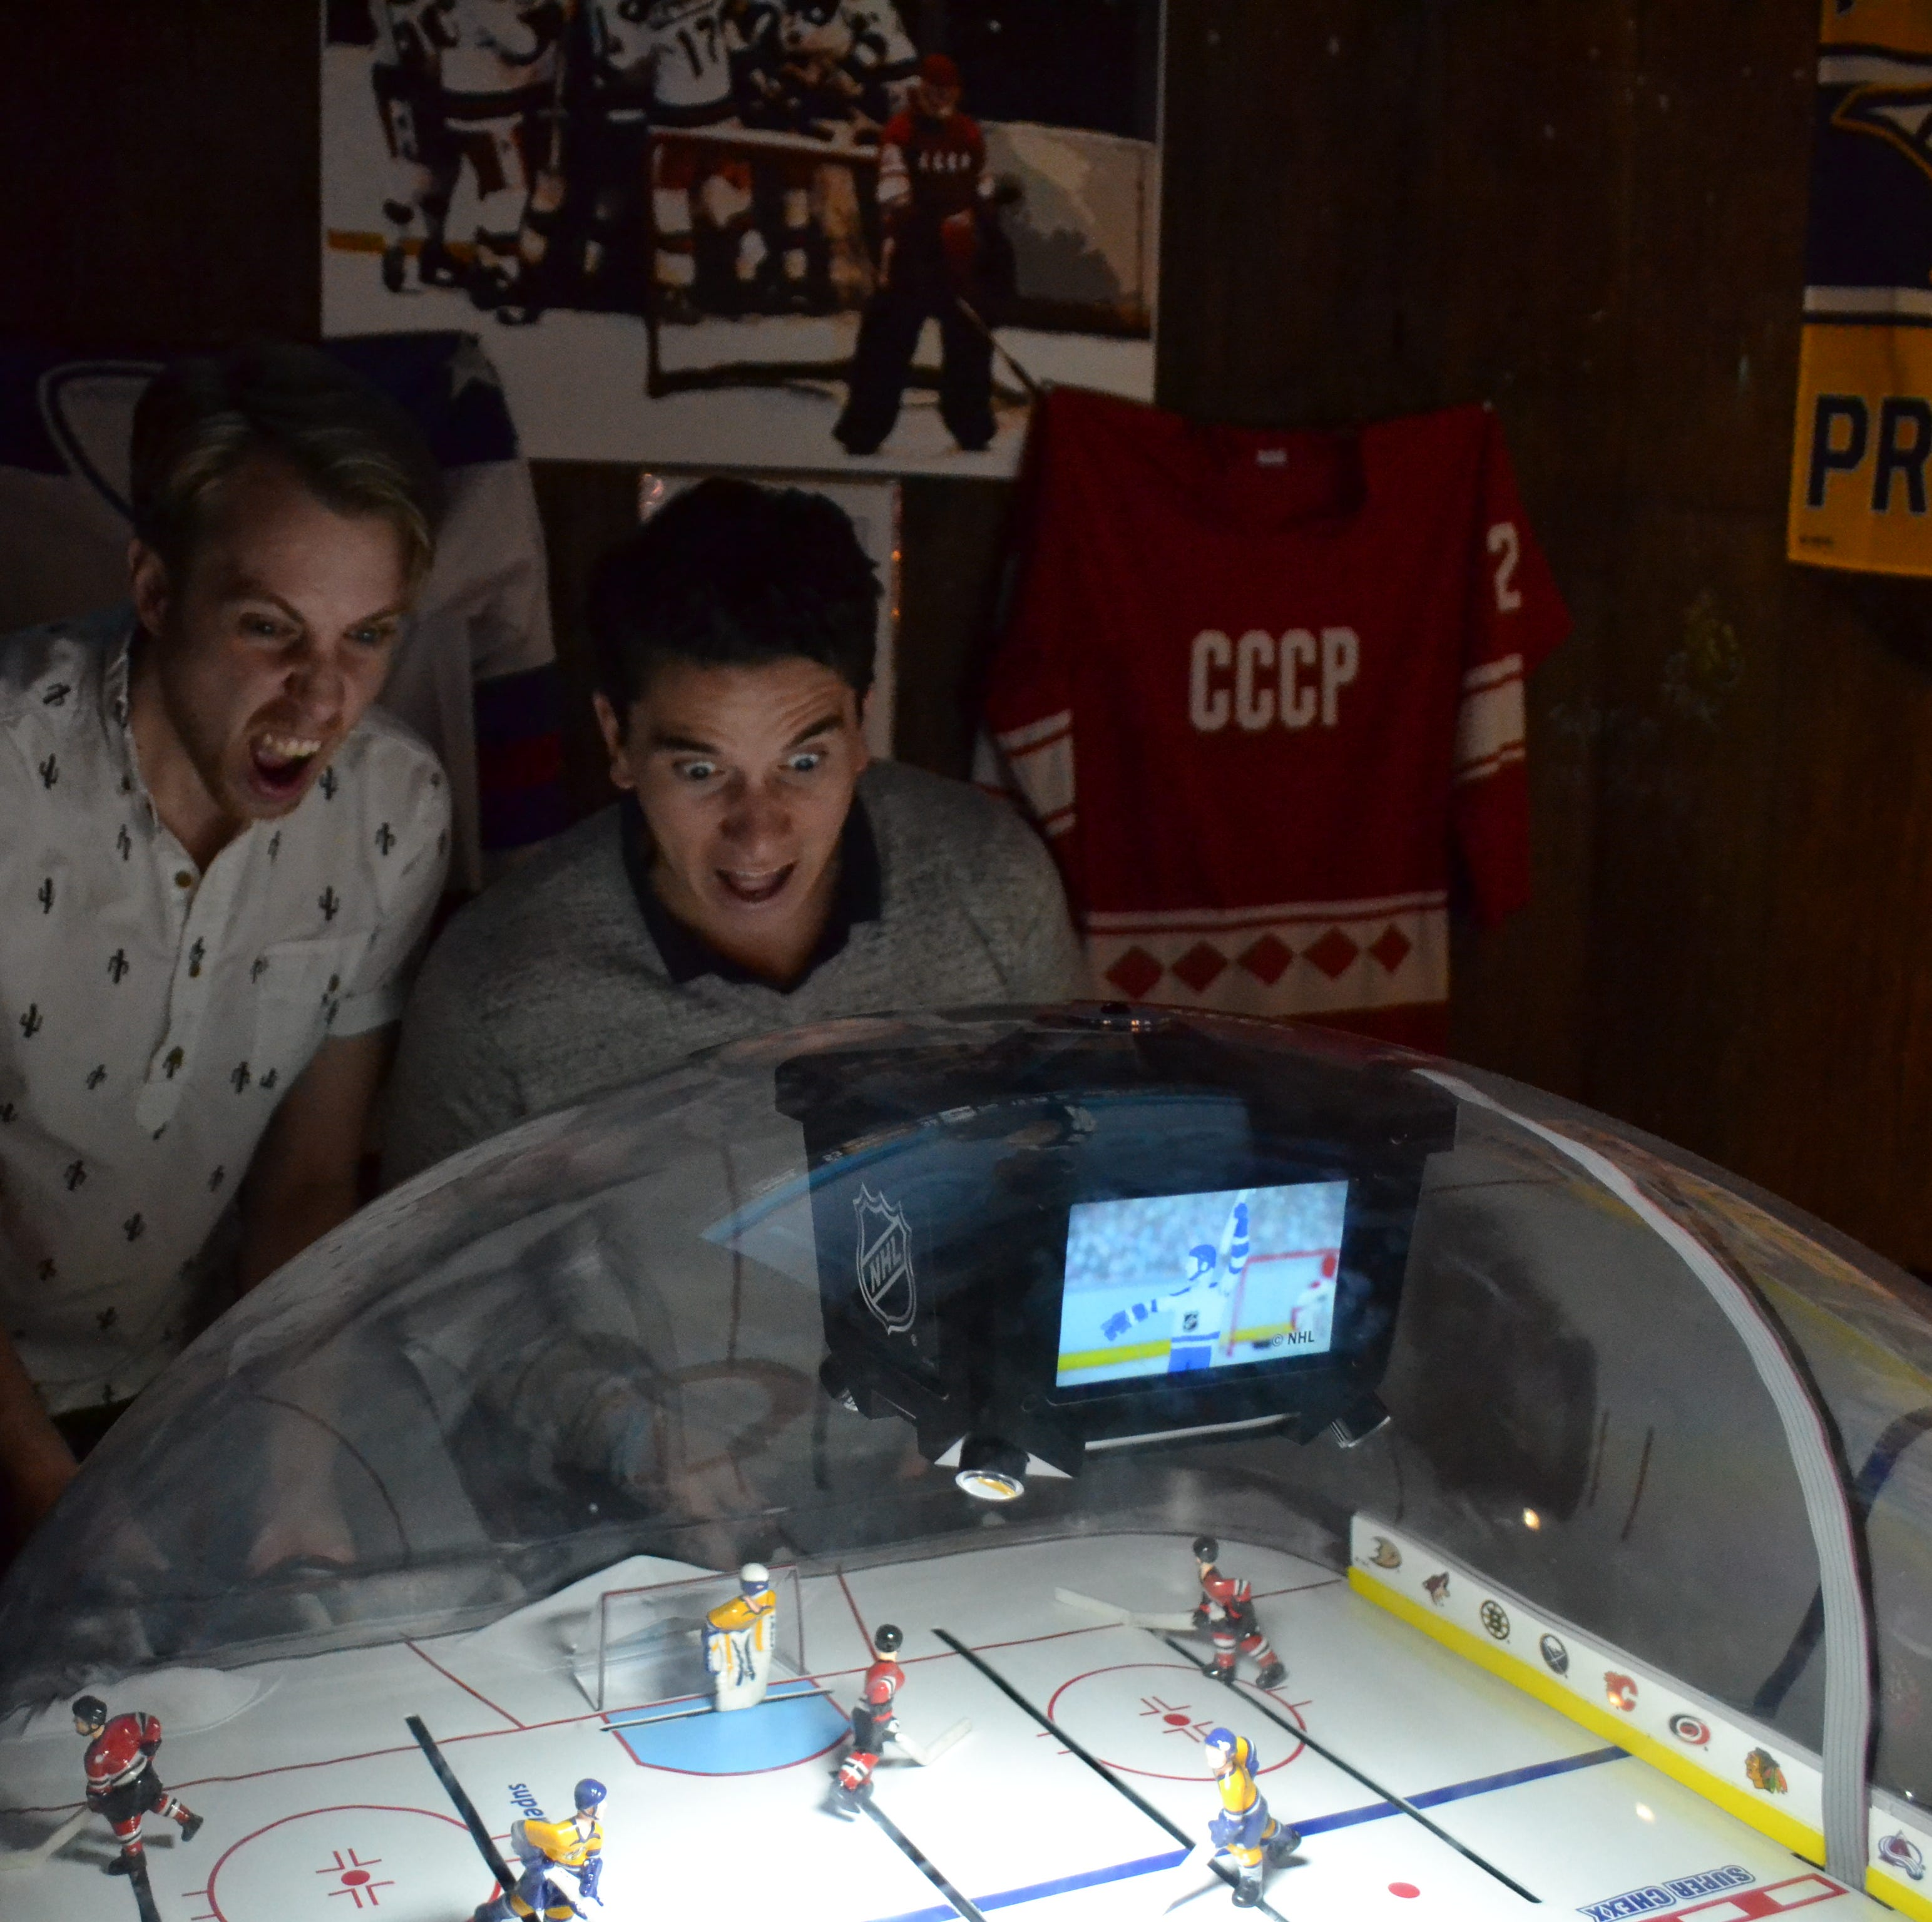 Bubble Hockey at Suttree's High Gravity Tavern